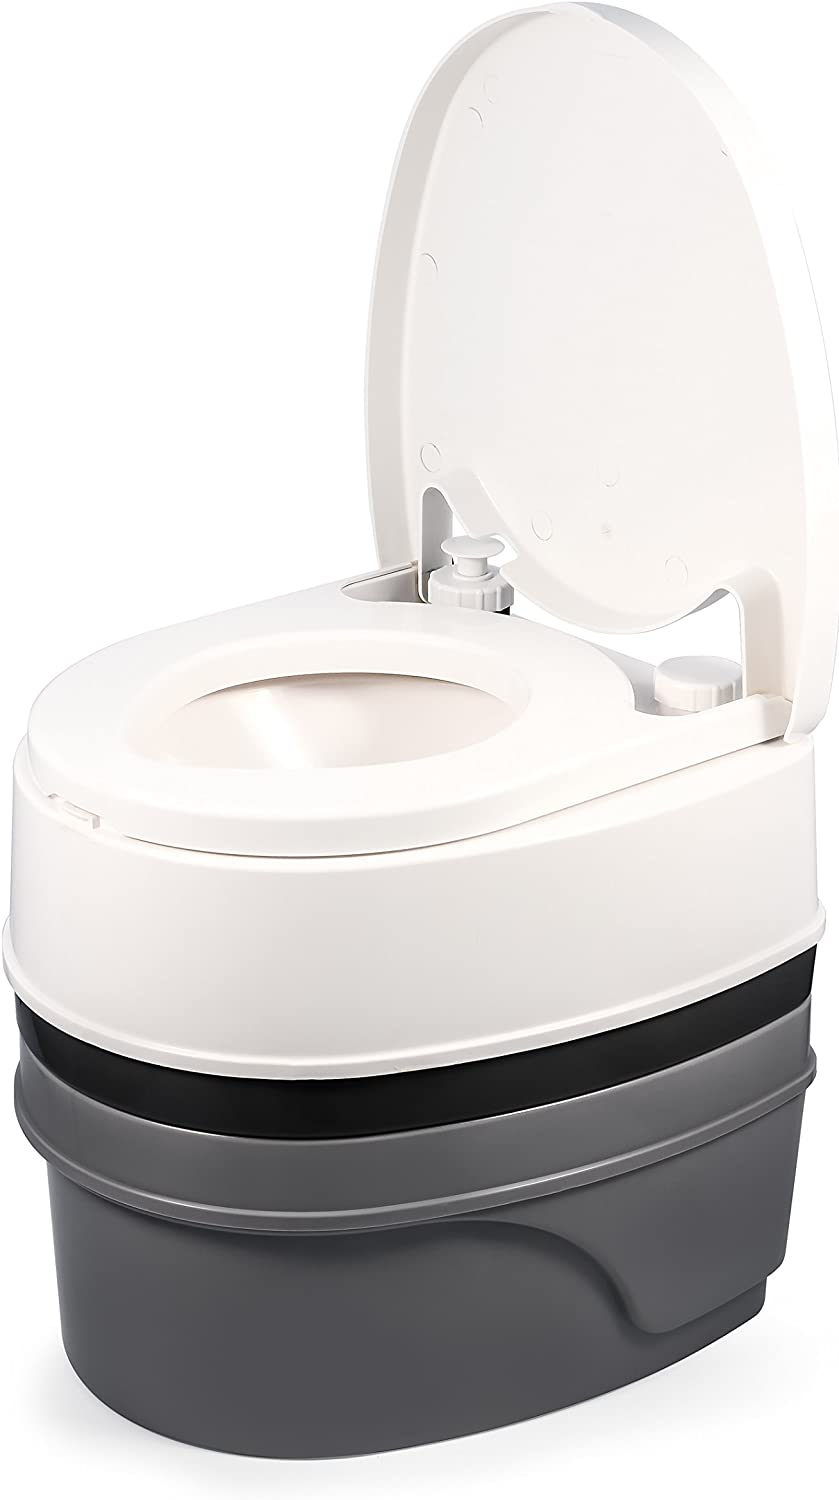 Amazon.com: Camco Premium Portable Travel Toilet With Three Directional  Flush and Swivel Dumping Elbow   Designed for Camping, RV, Boating And  Other Recreational Activities - (5.3 gallon) (41545),White : Automotive